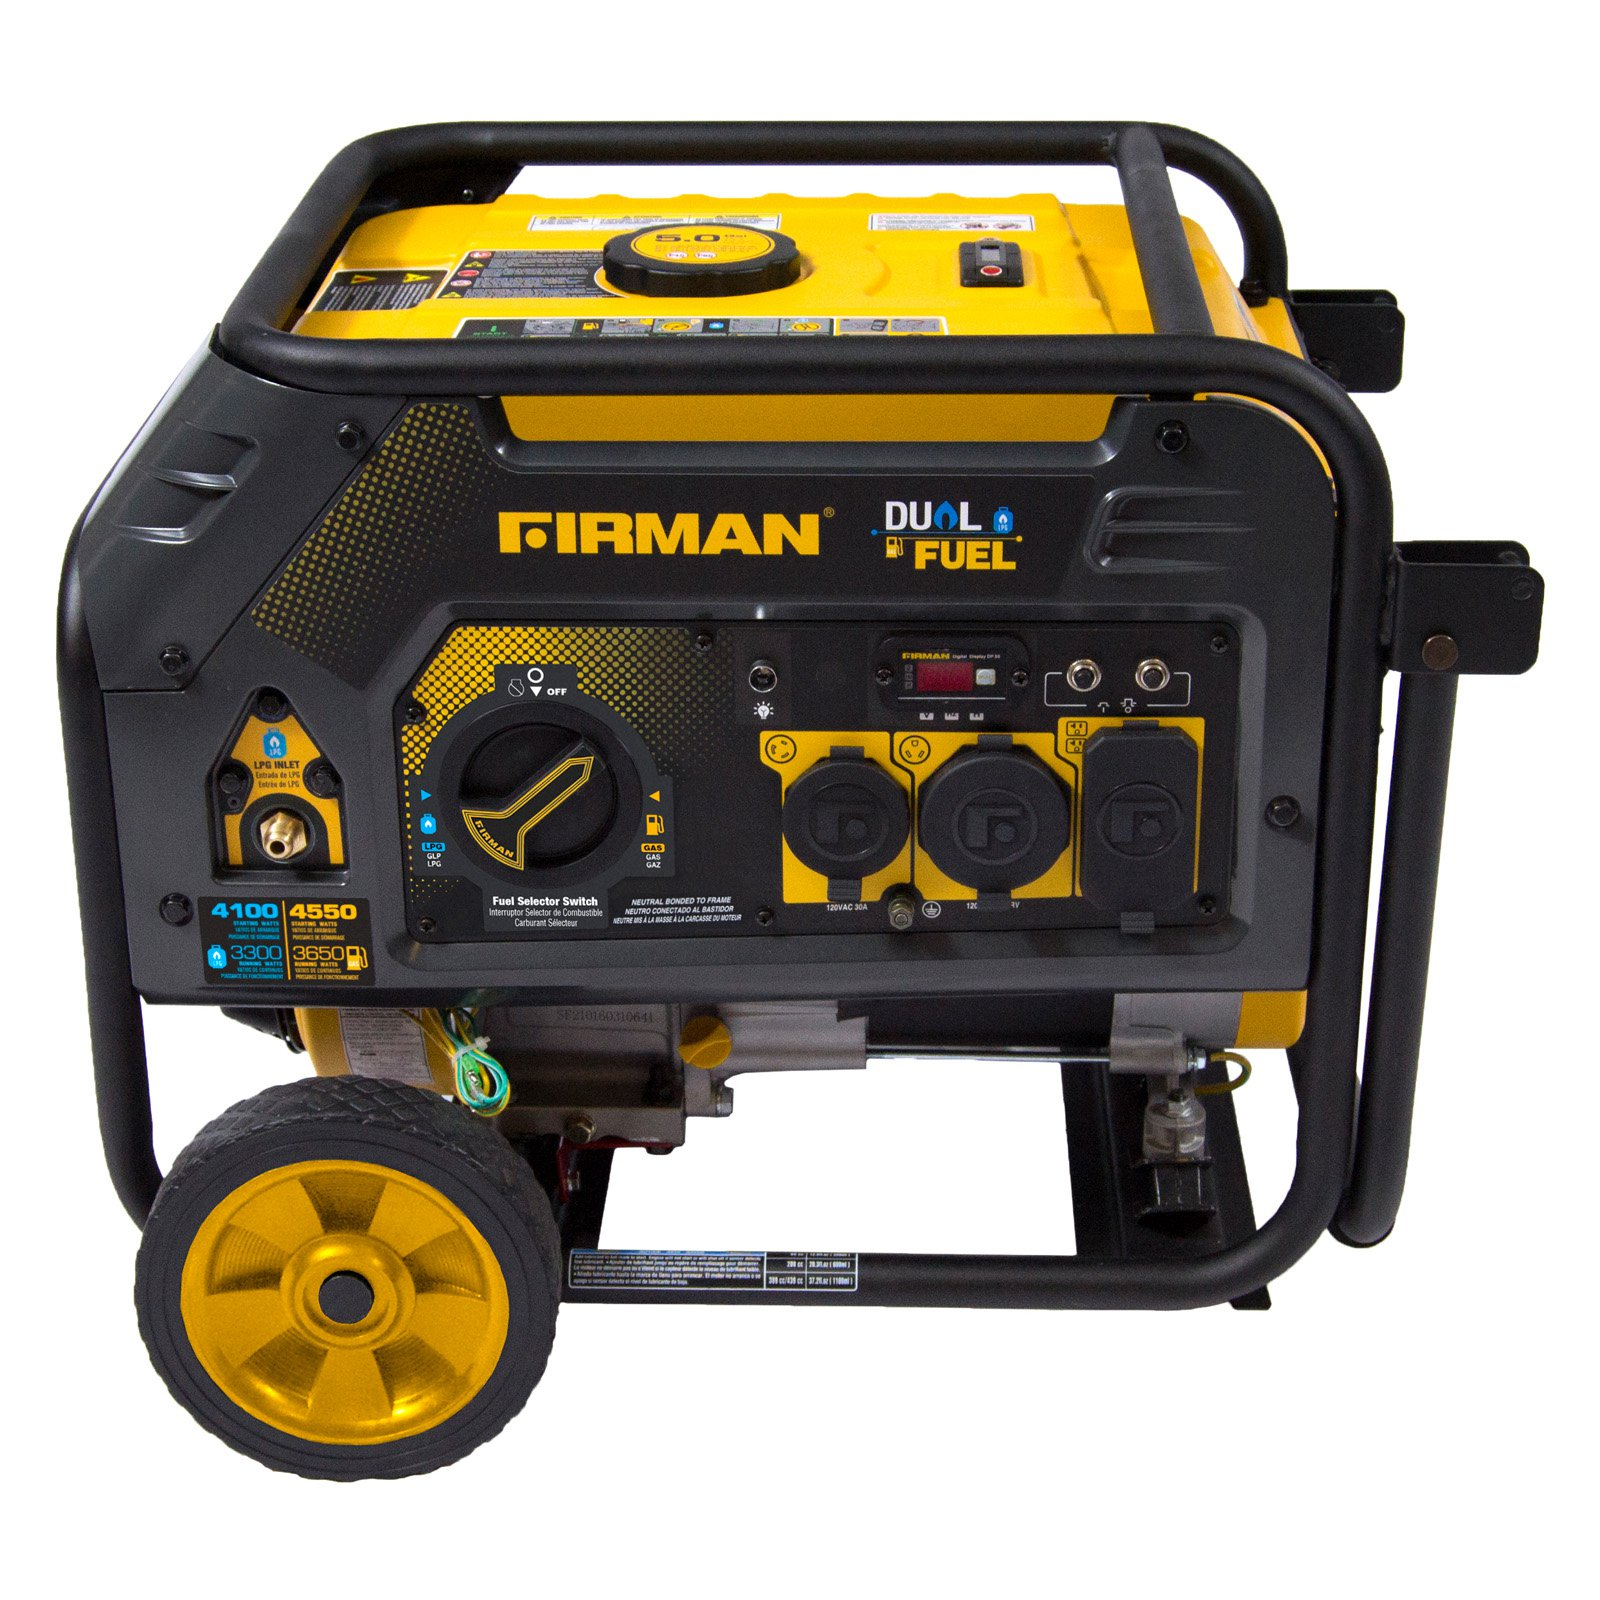 Firman Power Equipment Hybird Series H03652 3650 4550 Watt Dual Fuel Generator w Recoil Start by Sumec